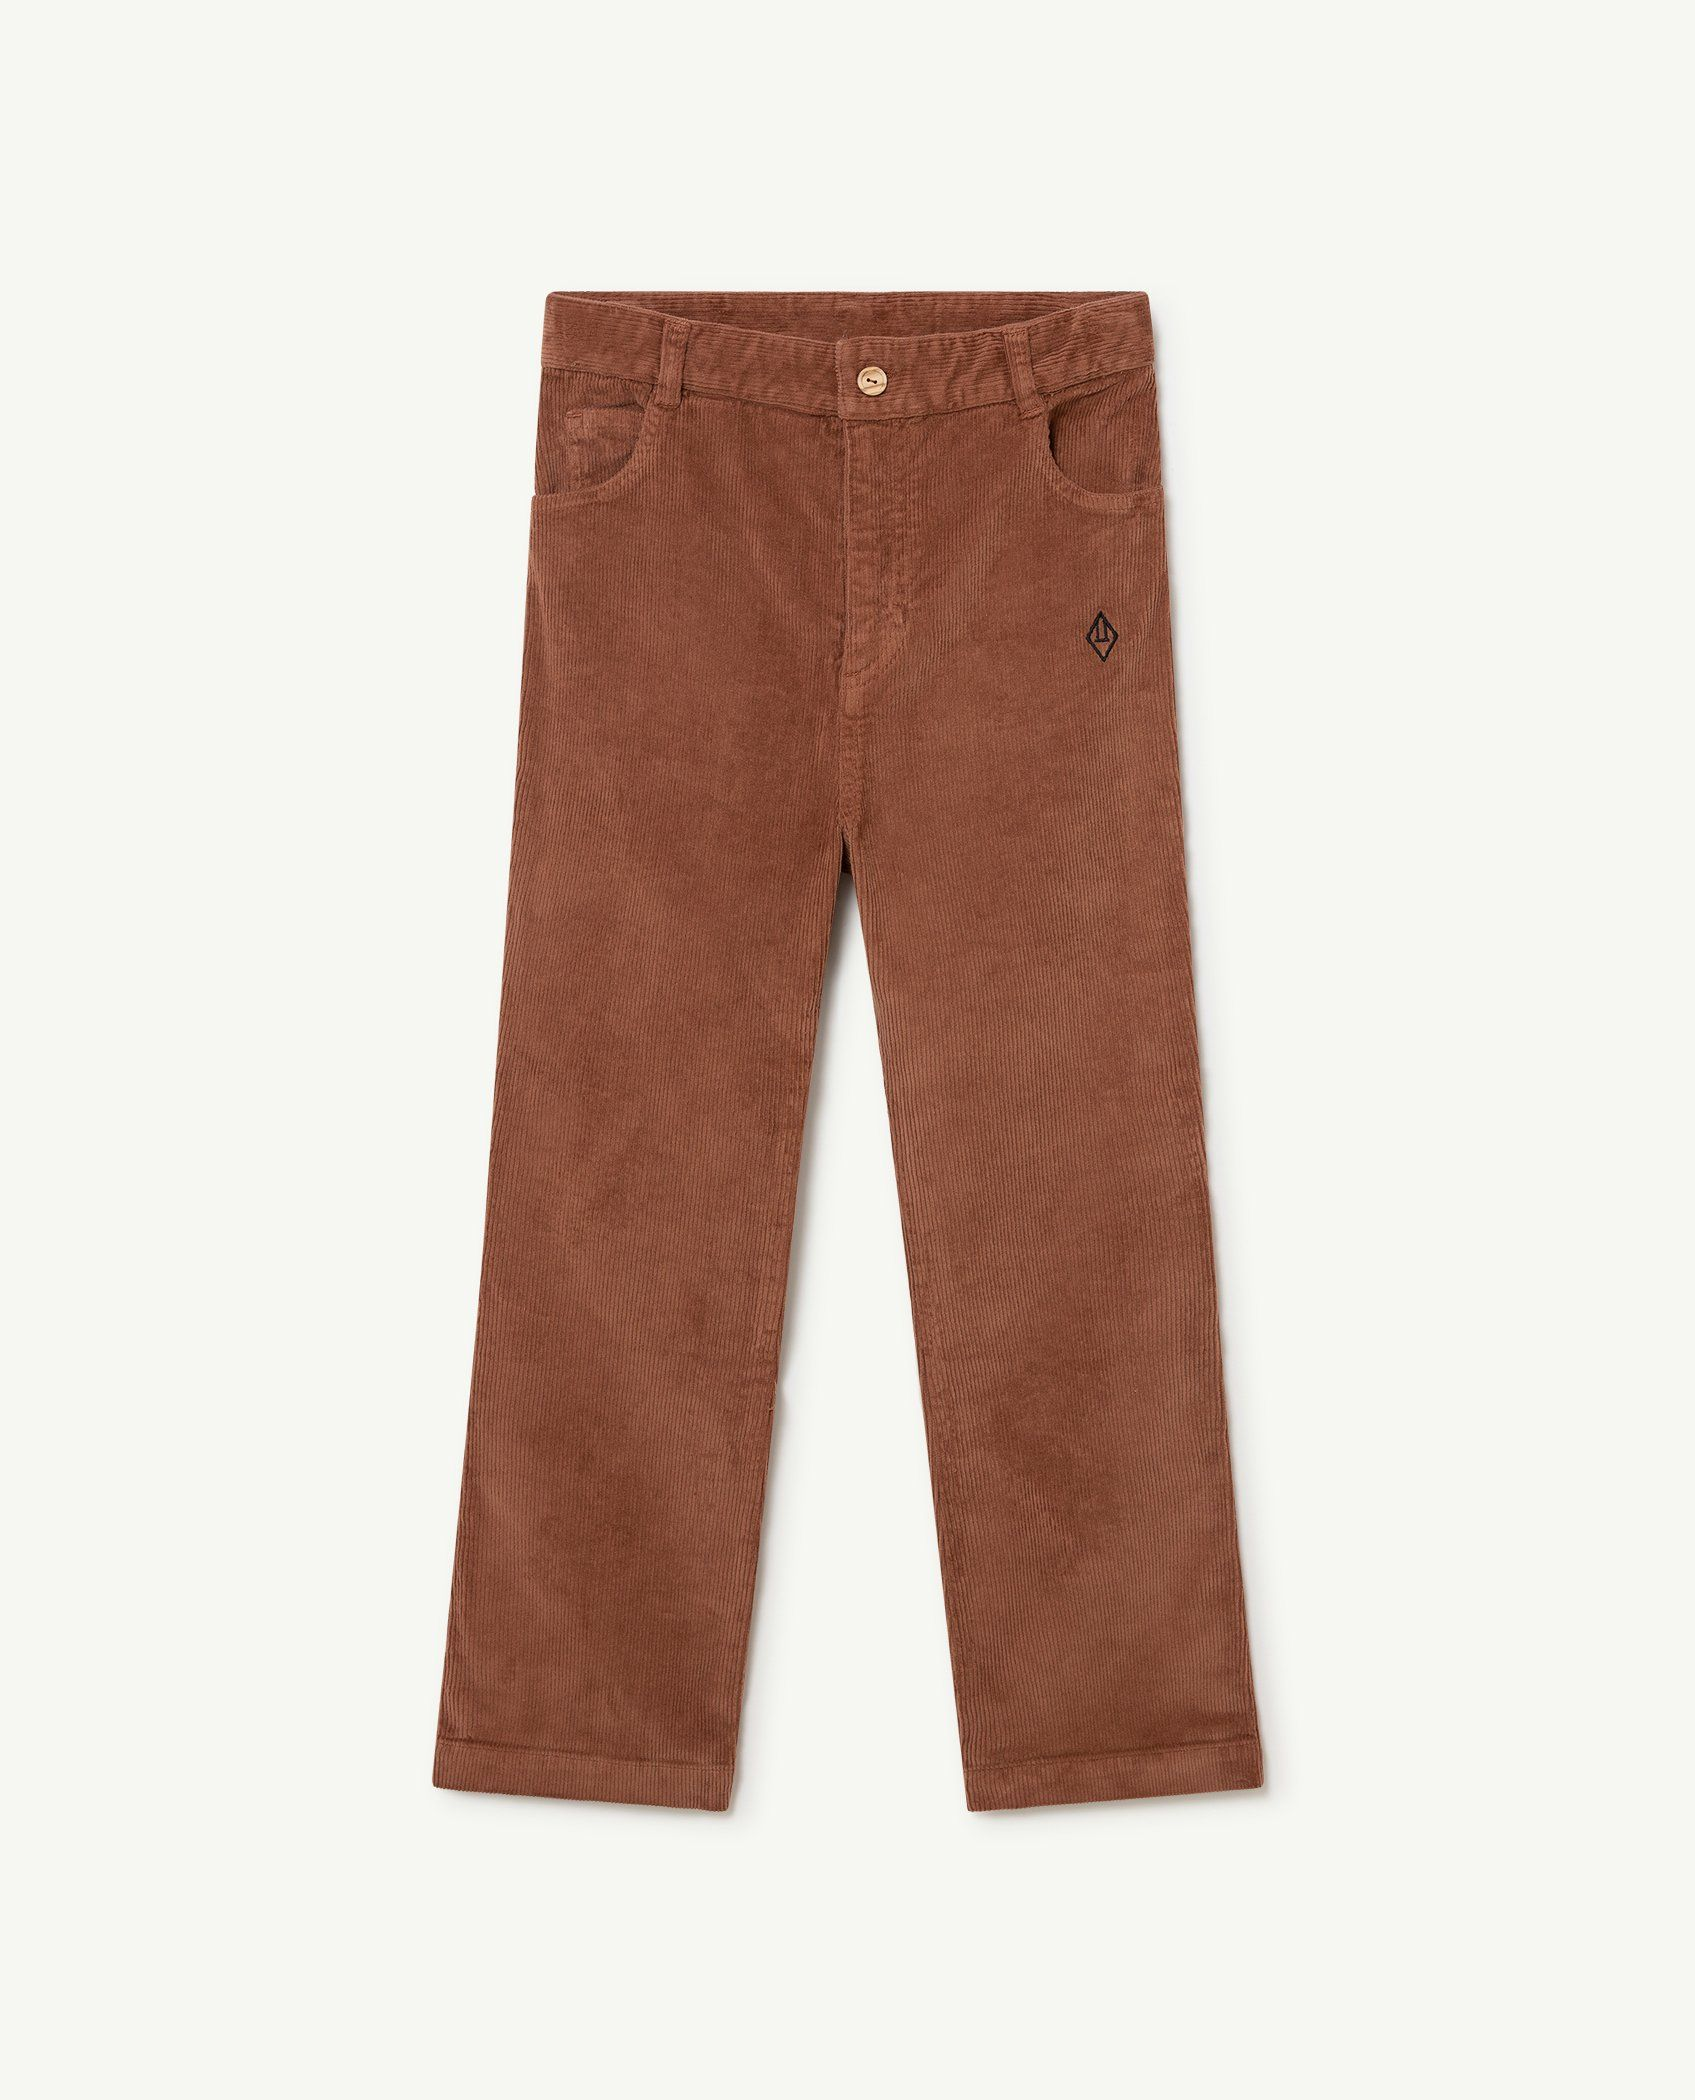 Brown Logo Porcupine Trousers img-1